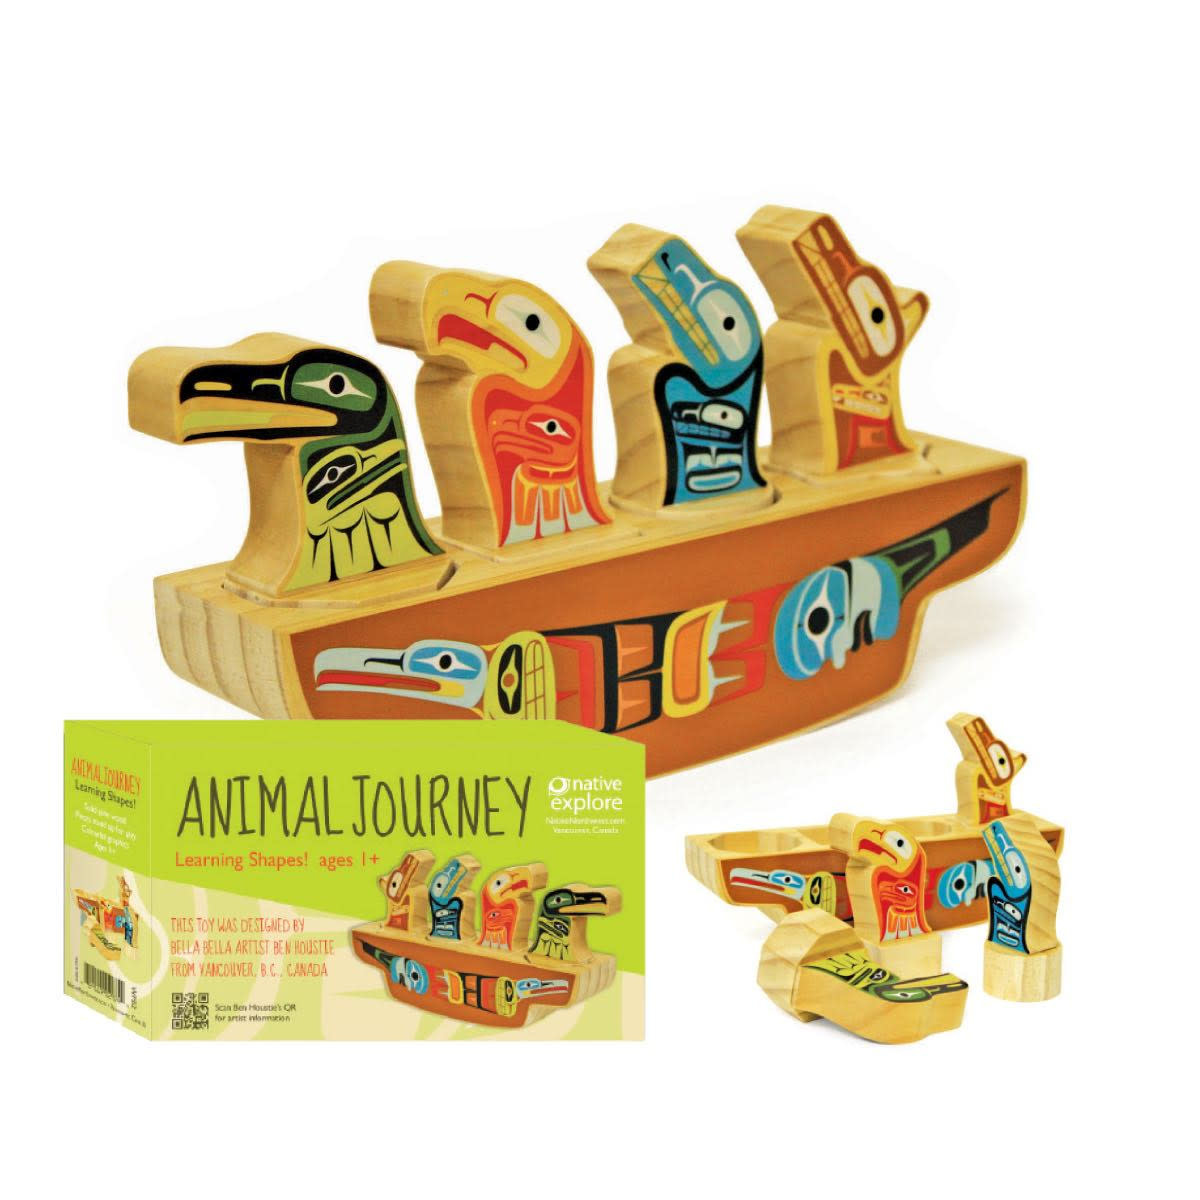 Learning Shapes-Animal Journey by Ben Houstie-2